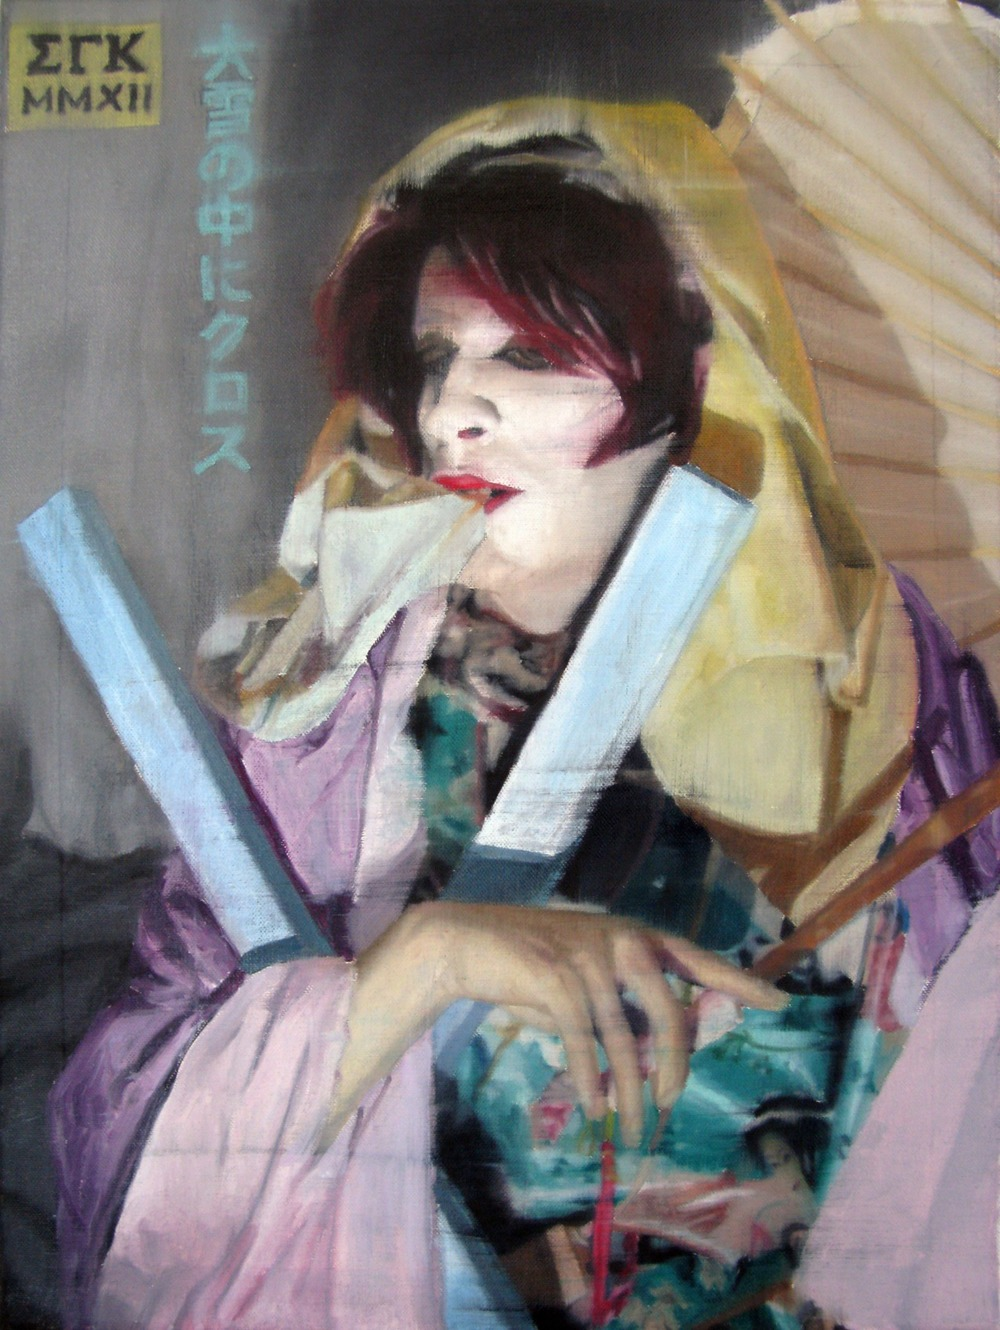 Samuel Quinteros,  Taisetsu no naka ni kurosu  (2012), oil on canvas, 61 x 46 cm. Courtesy the artist.